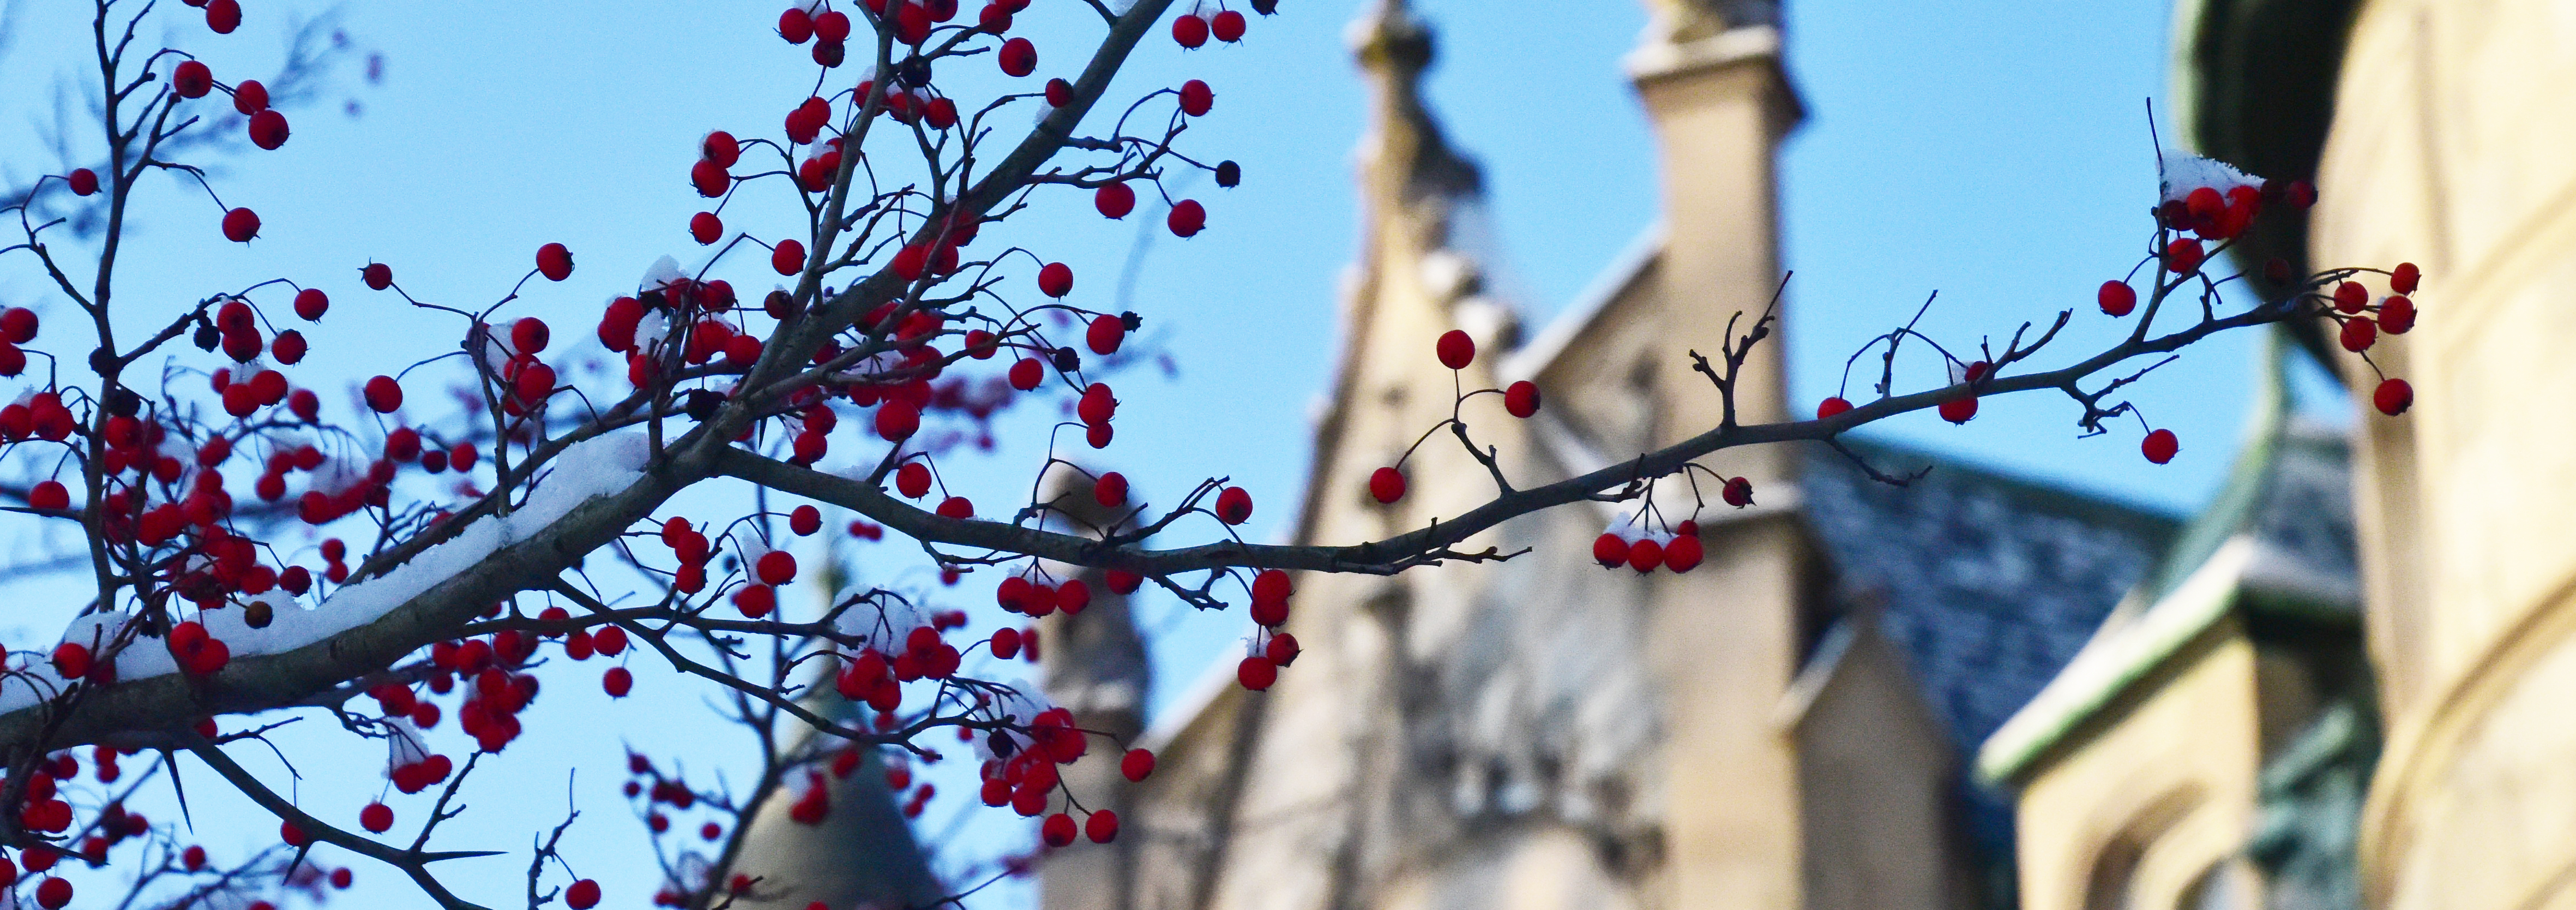 red berries in focus with the top of main building out of focus.